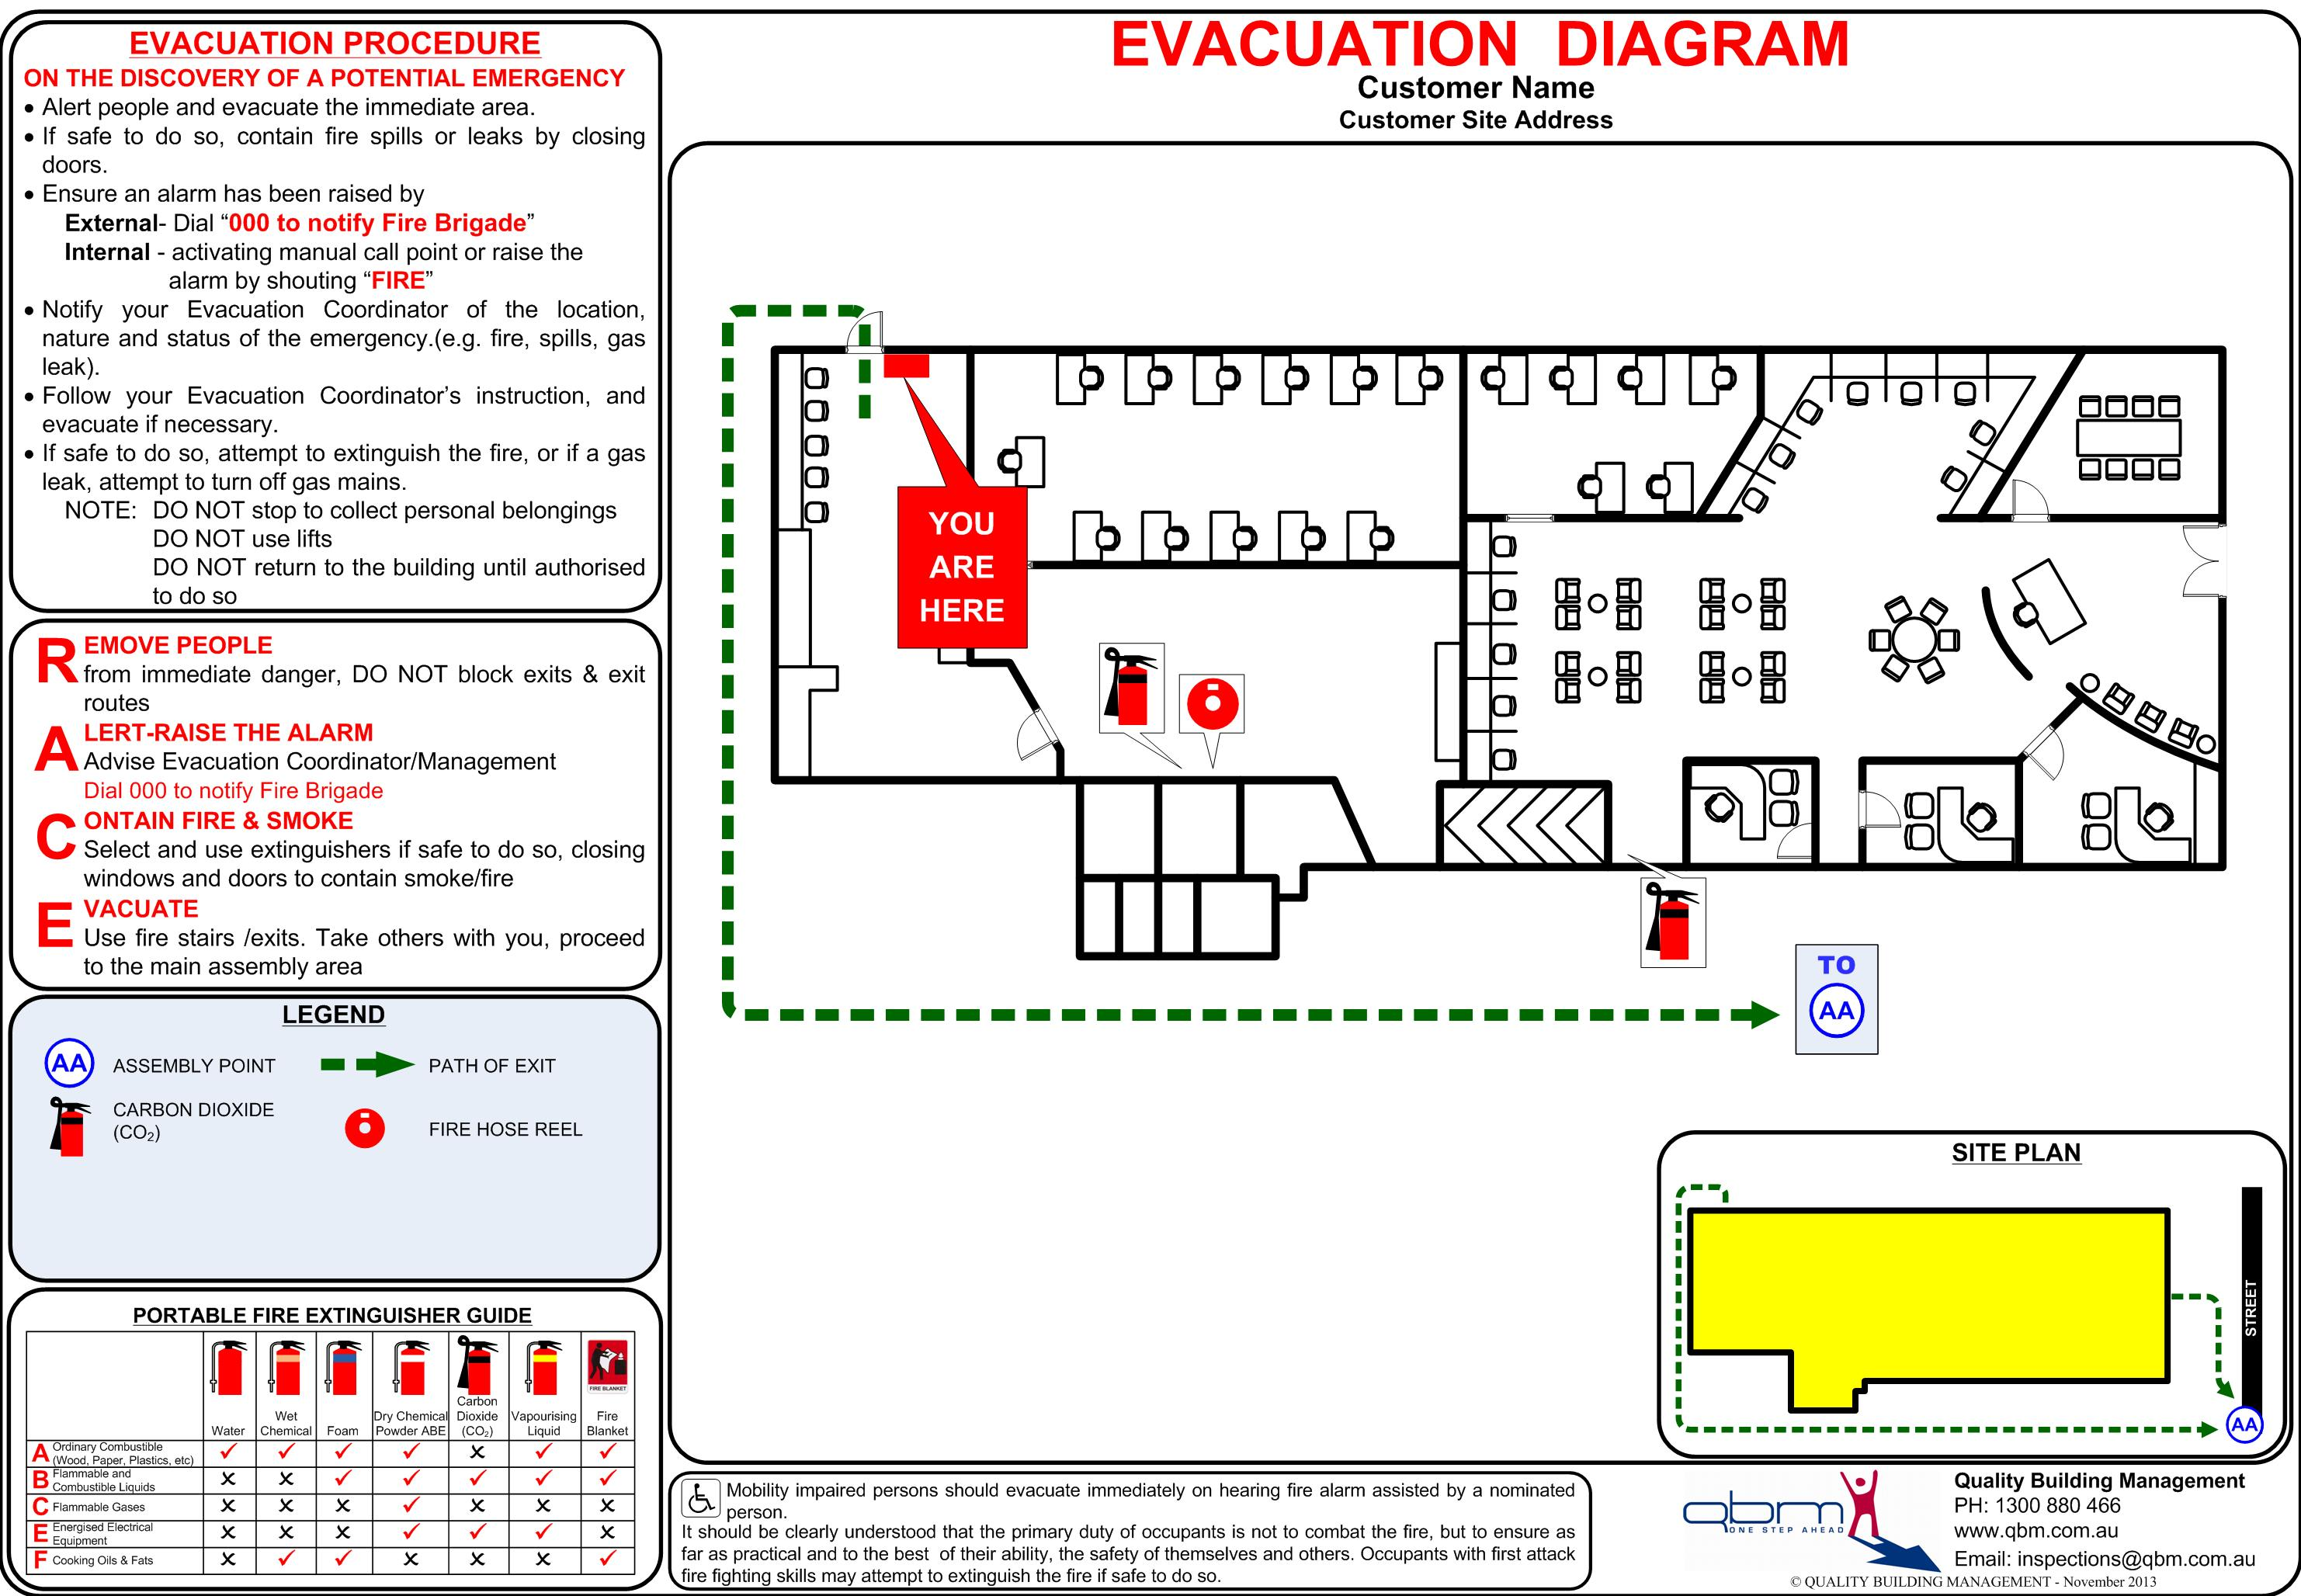 Emergency evacuation diagrams qbm compliance reporting for Fire evacuation plan template for office